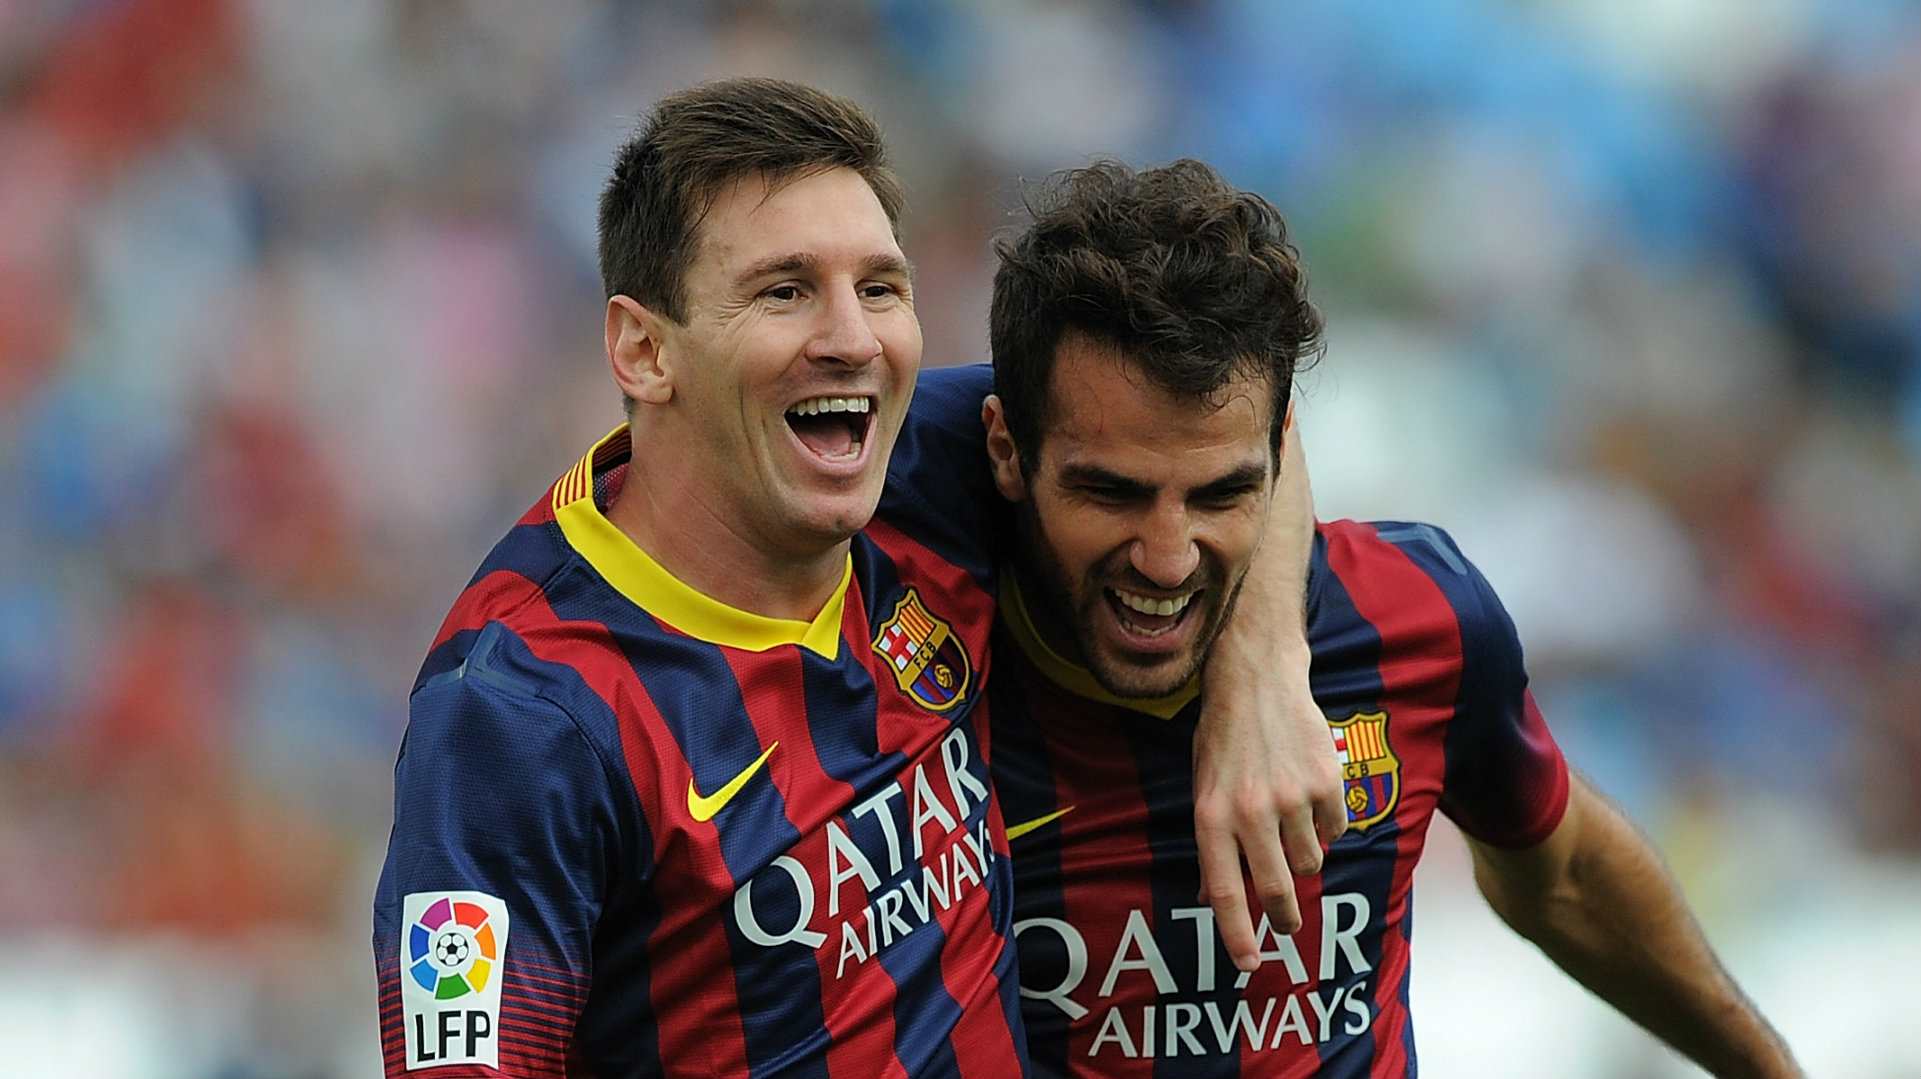 'I've seen things you wouldn't believe' - Fabregas thinks finding another Messi is impossible